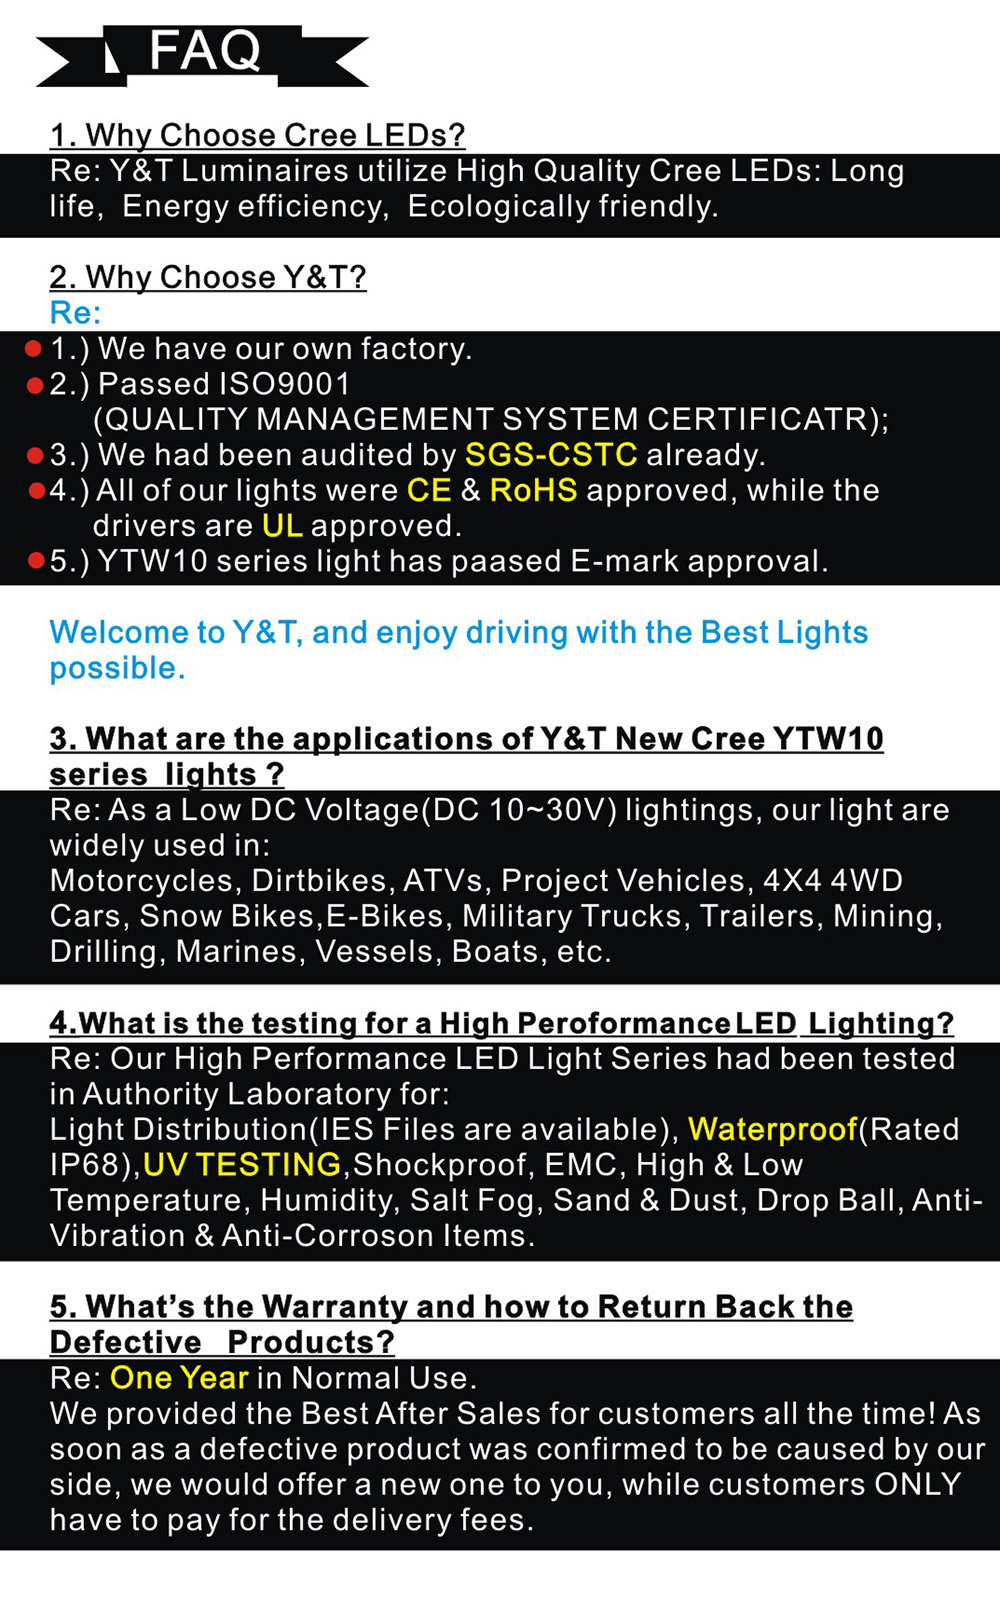 Y&T YTLB01-C Harvester Offroad SUV 4*4 Tow Truck Boat 7.5inch 36w double row LED Light Bar